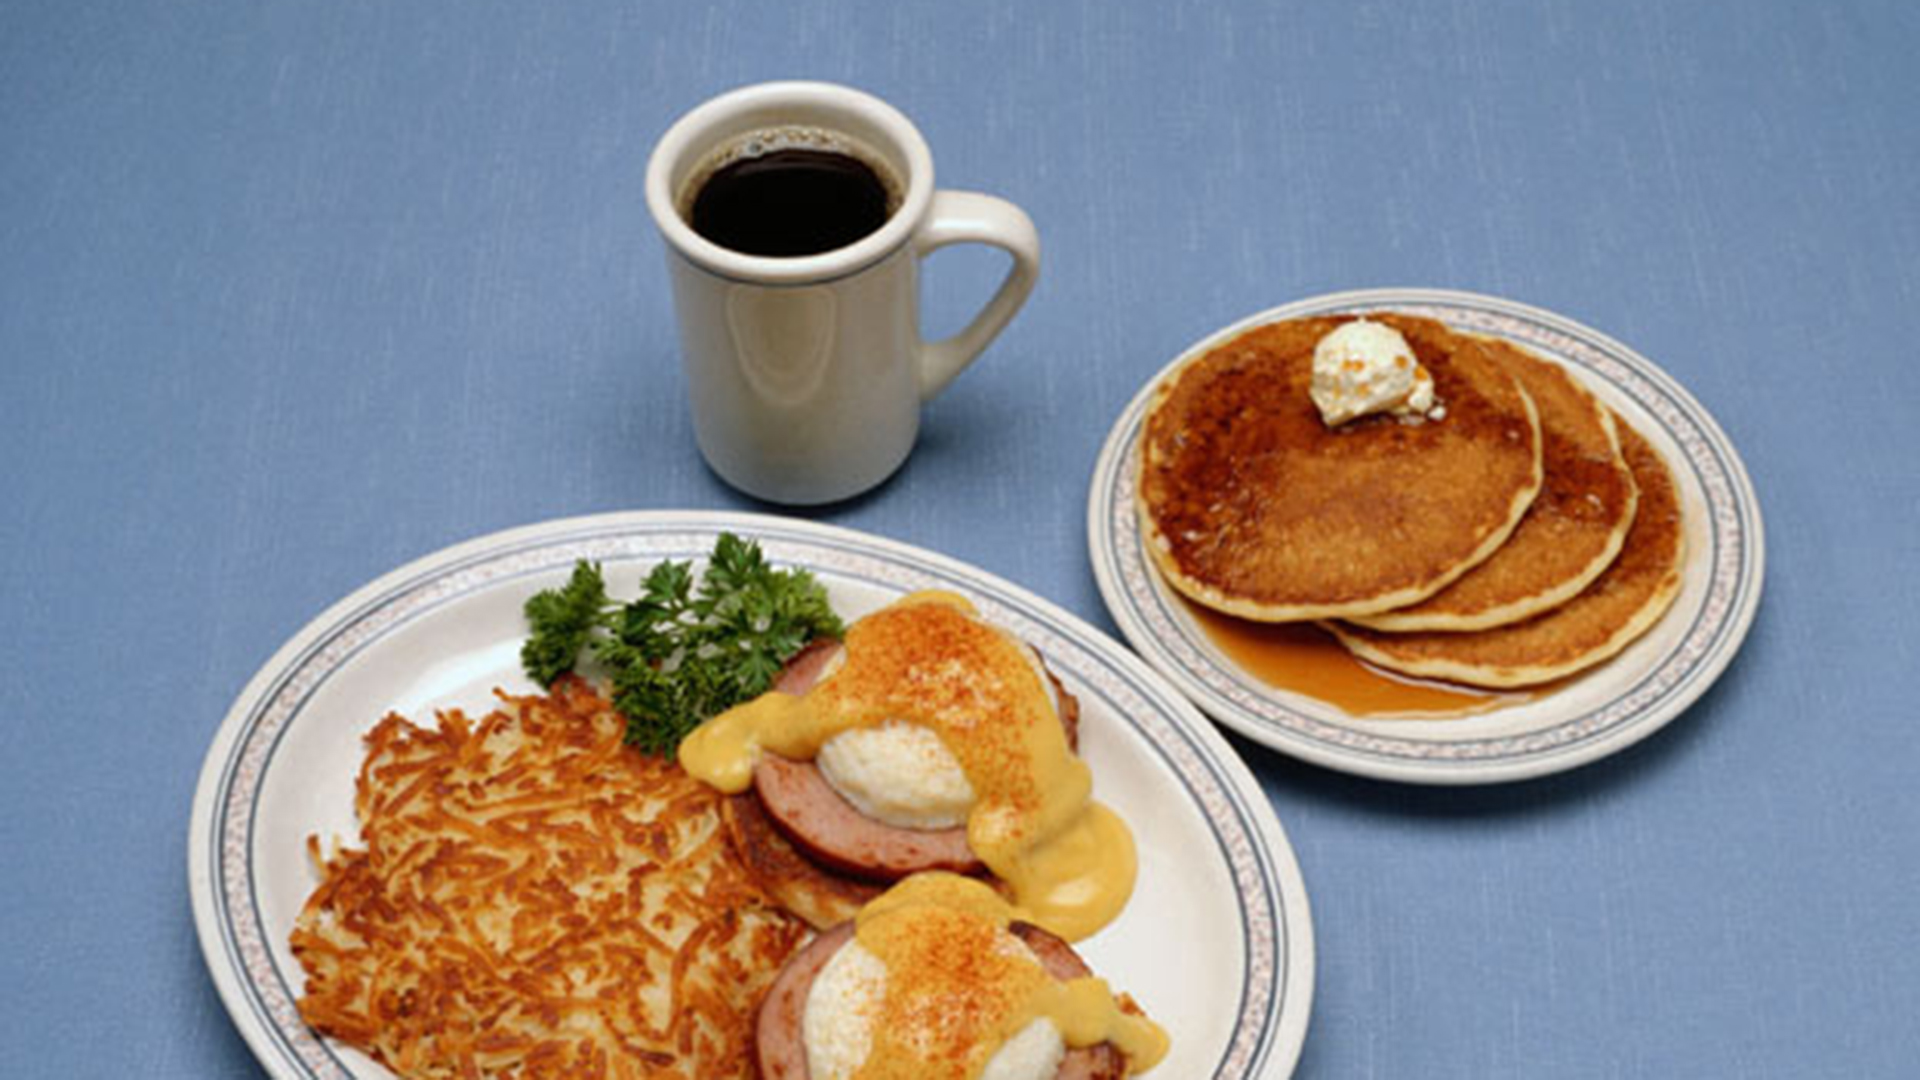 Fd004001 Pancacke Syrup Er Eggs Benedict Hollandaise Hash Browns Potatoes Coffee Breakfast Food Meal Eat Consume Photodisc Stock Photo